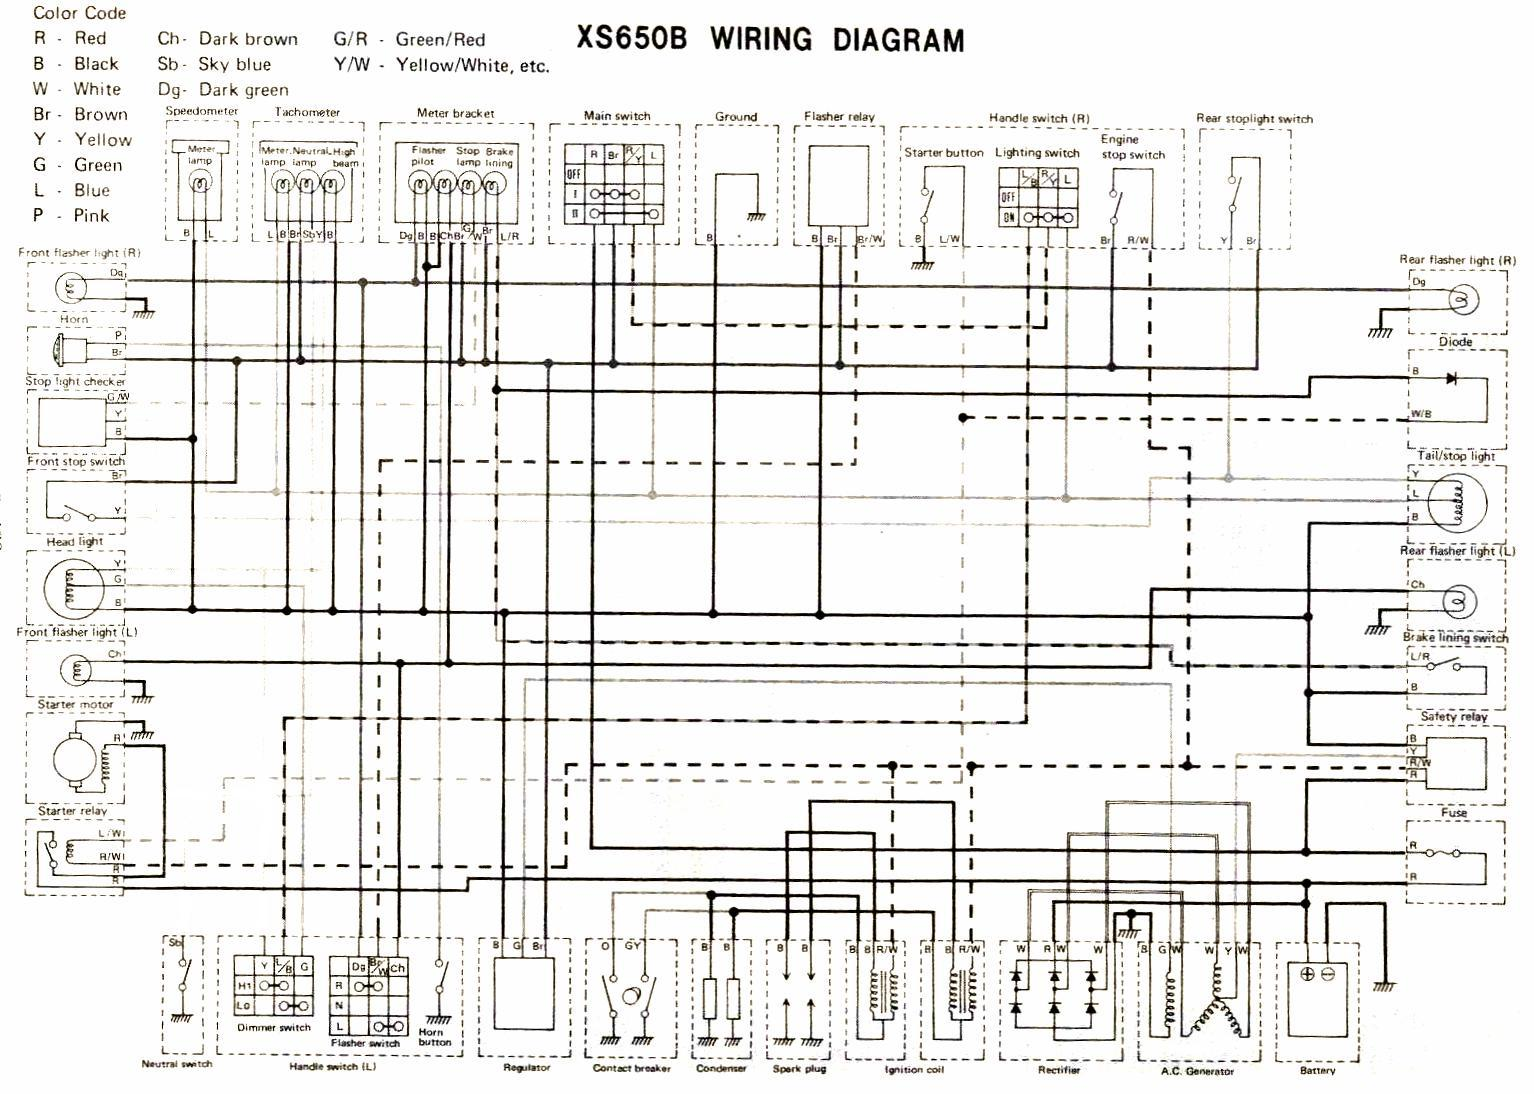 75XS650B wiring diagrams 1983 yamaha xs650 wiring diagram at bayanpartner.co